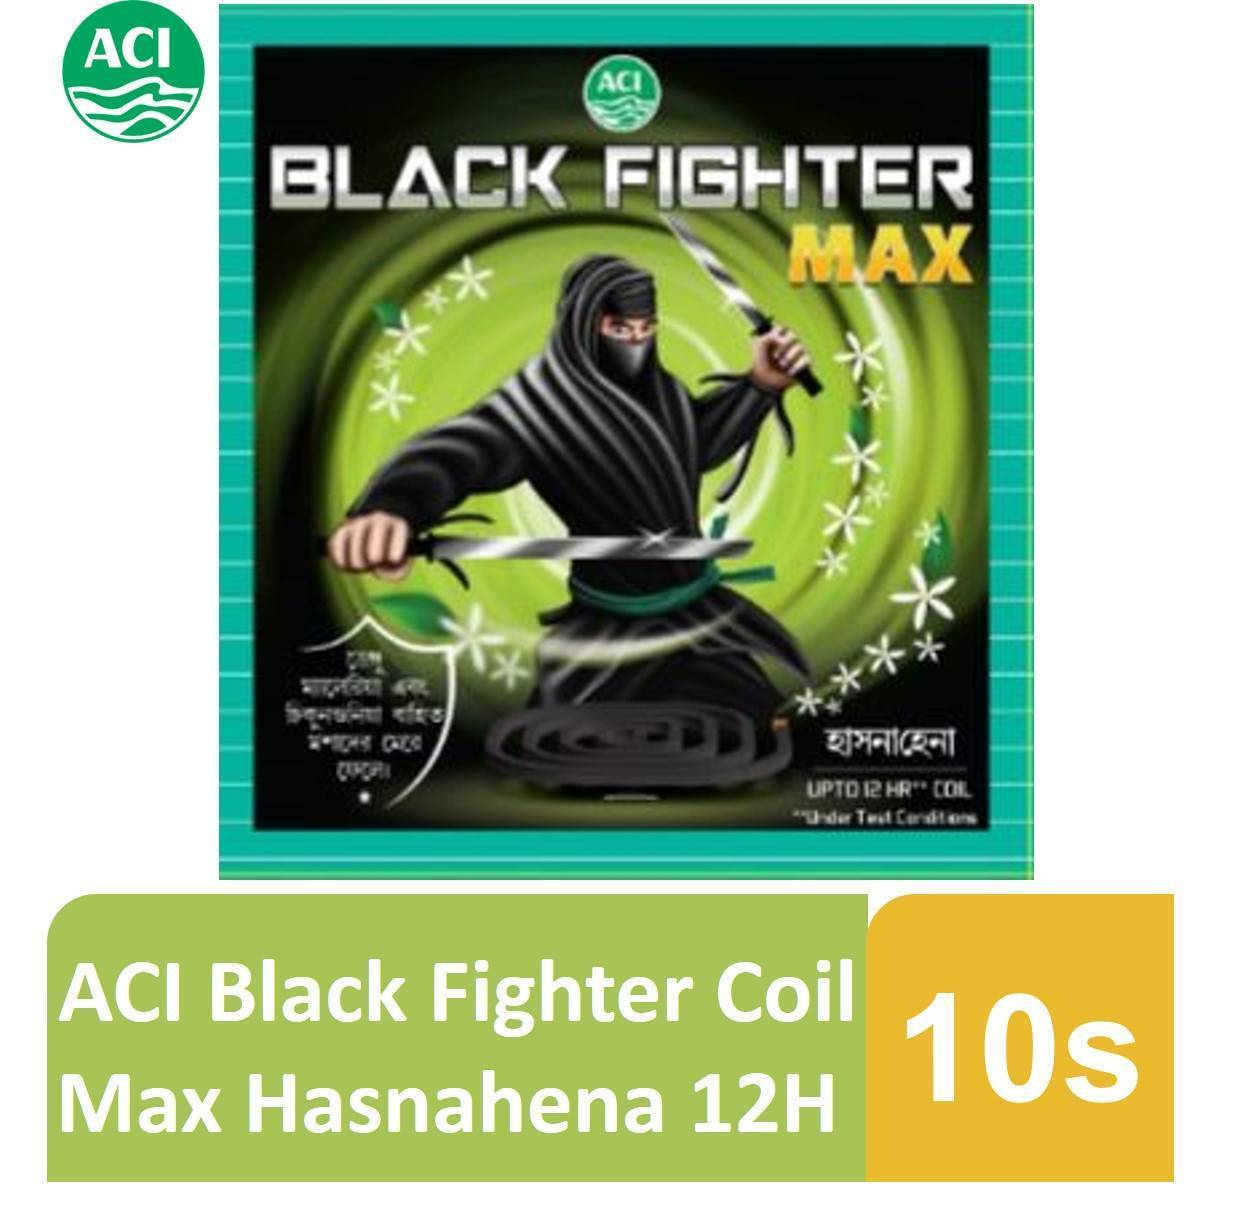 ACI Black Fighter Coil Max Hasnahena12 H